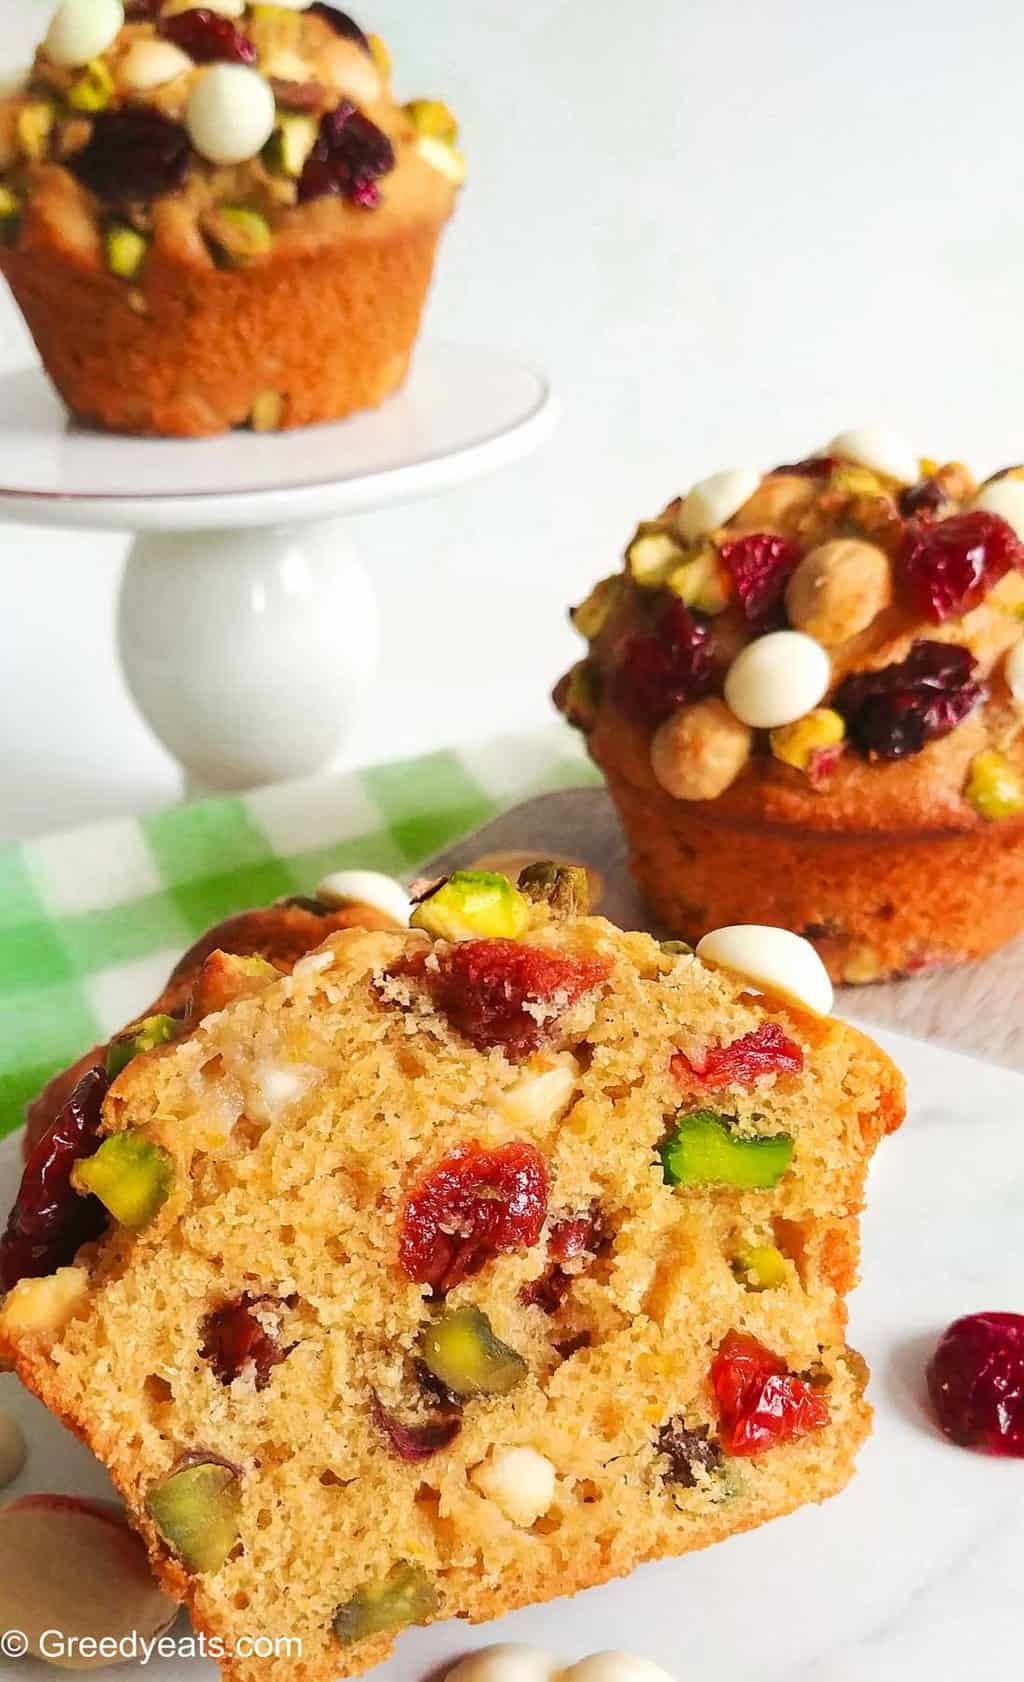 Soft and fluffy Cranberry Orange Muffin Recipe made with whole grains.